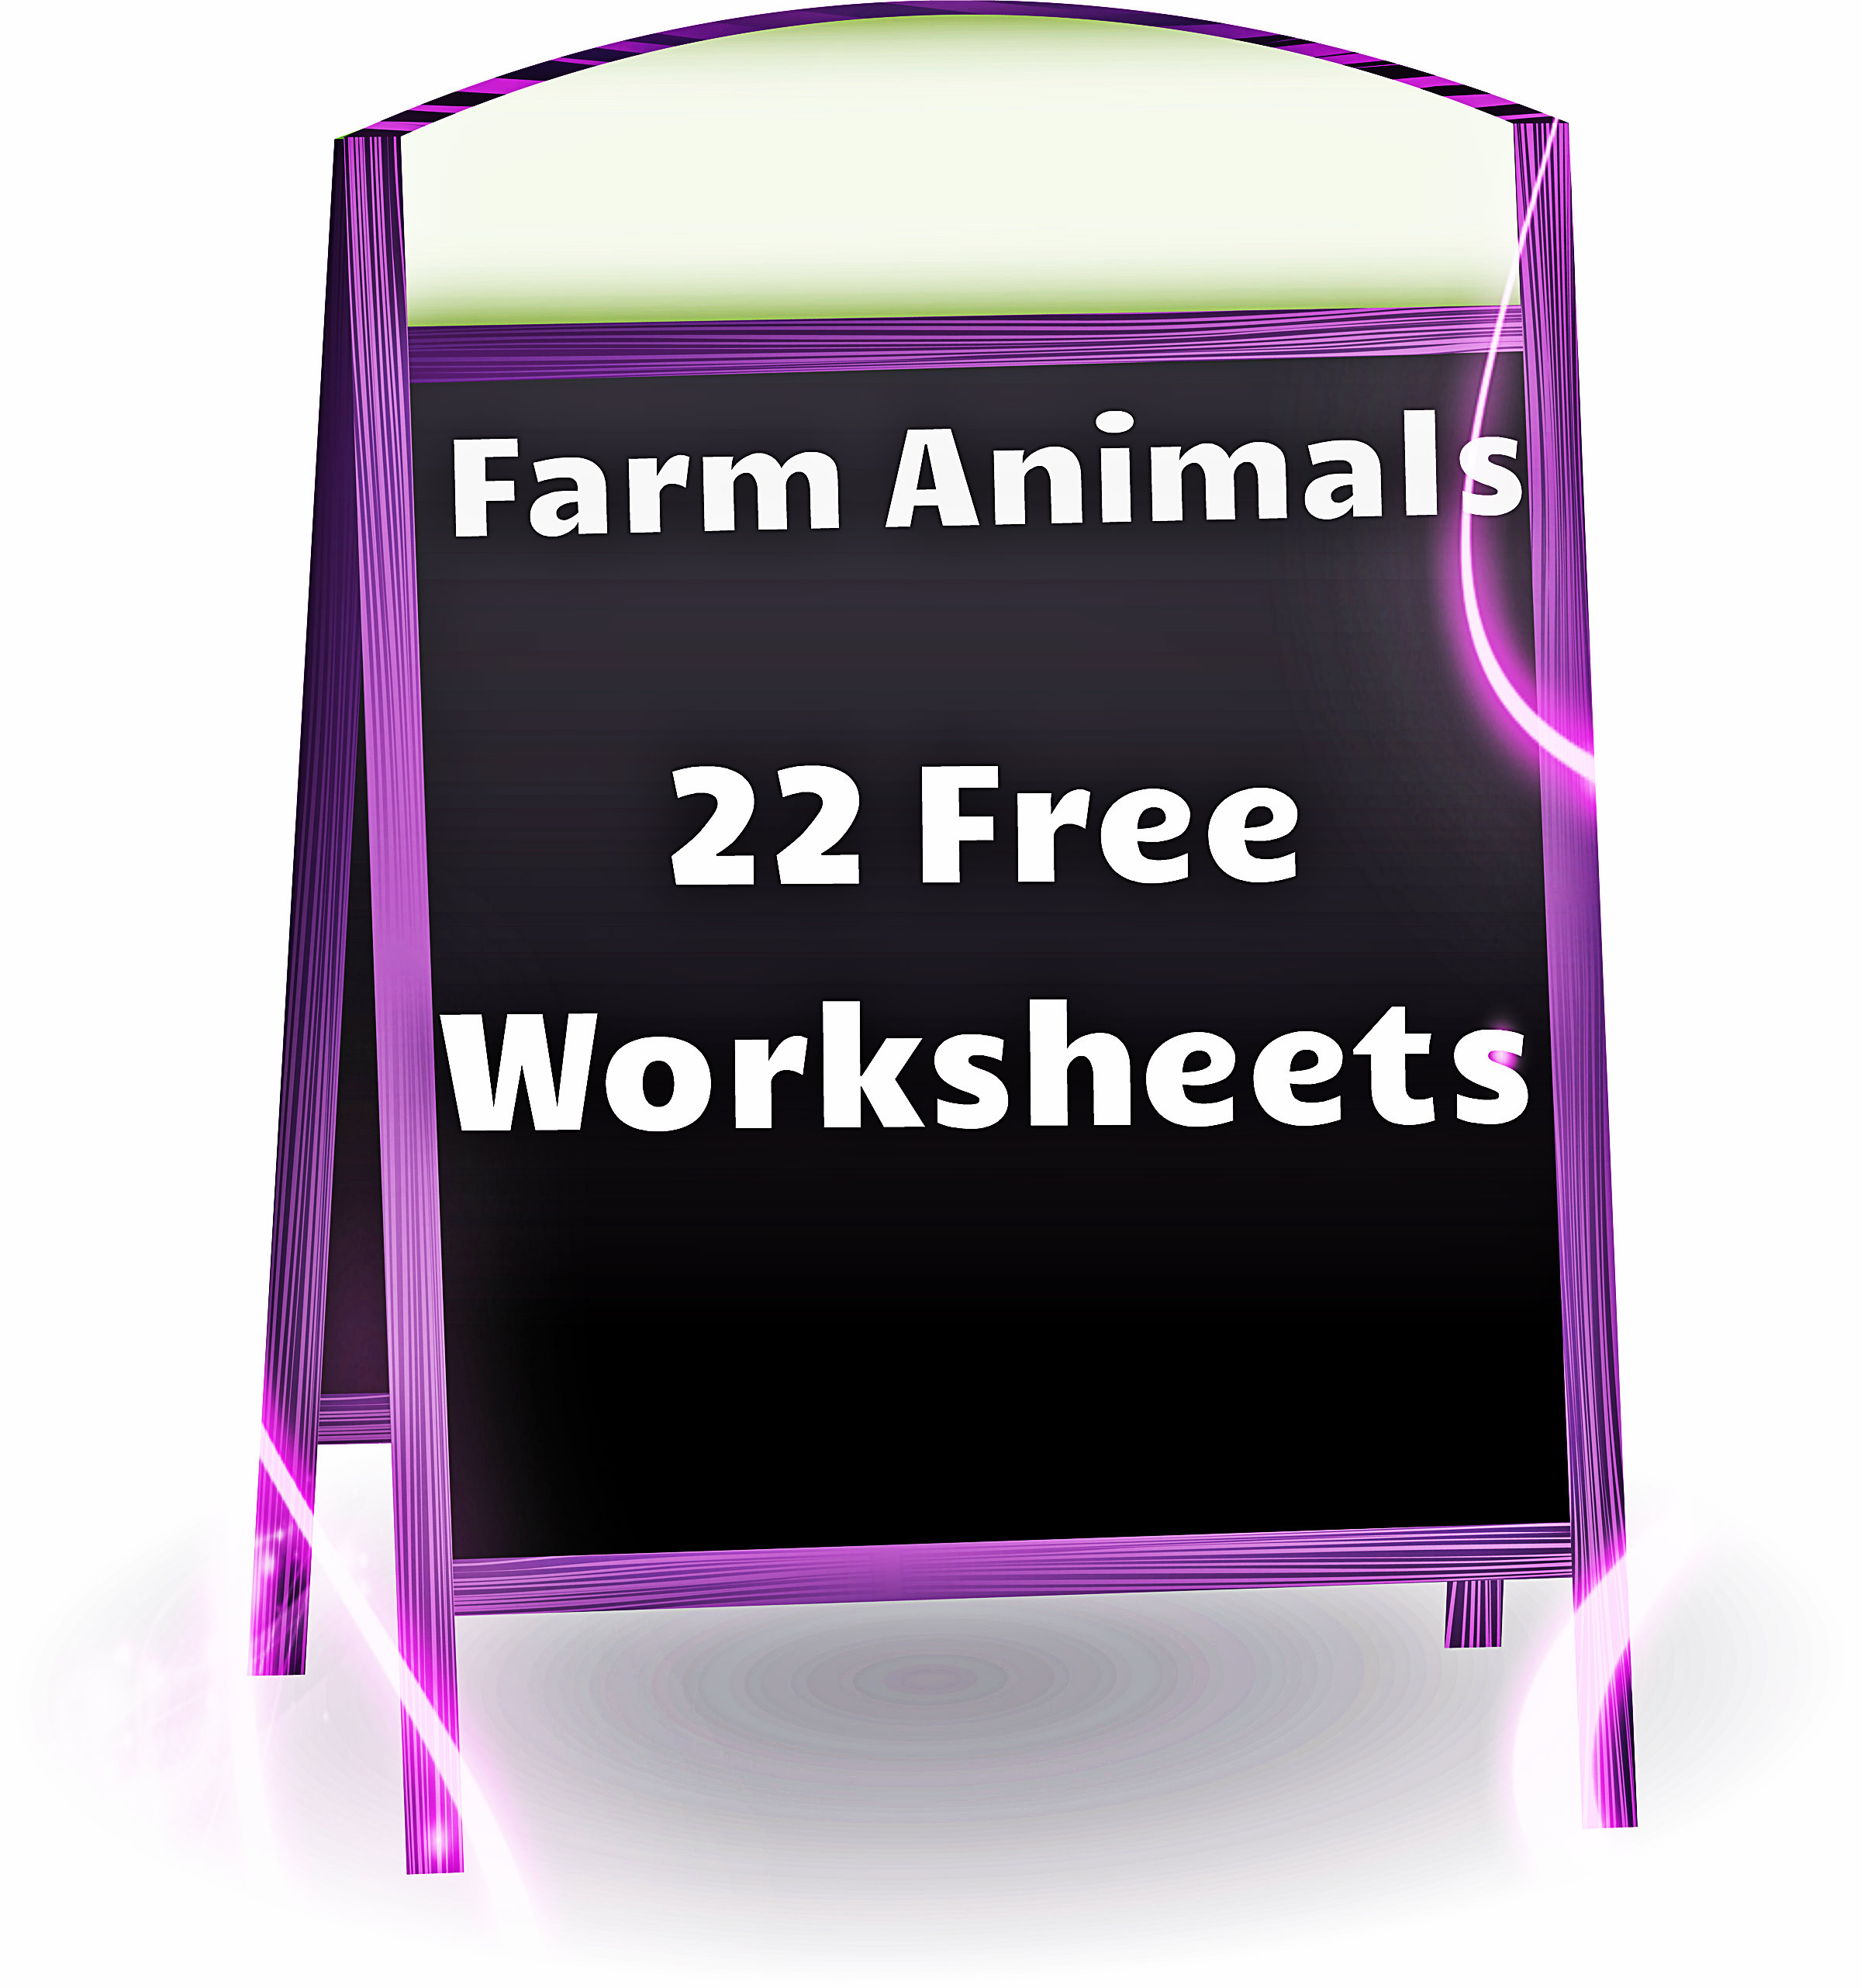 Big And Little Animal Worksheets | Printable Worksheets and Activities for  Teachers, Parents, Tutors and Homeschool Families